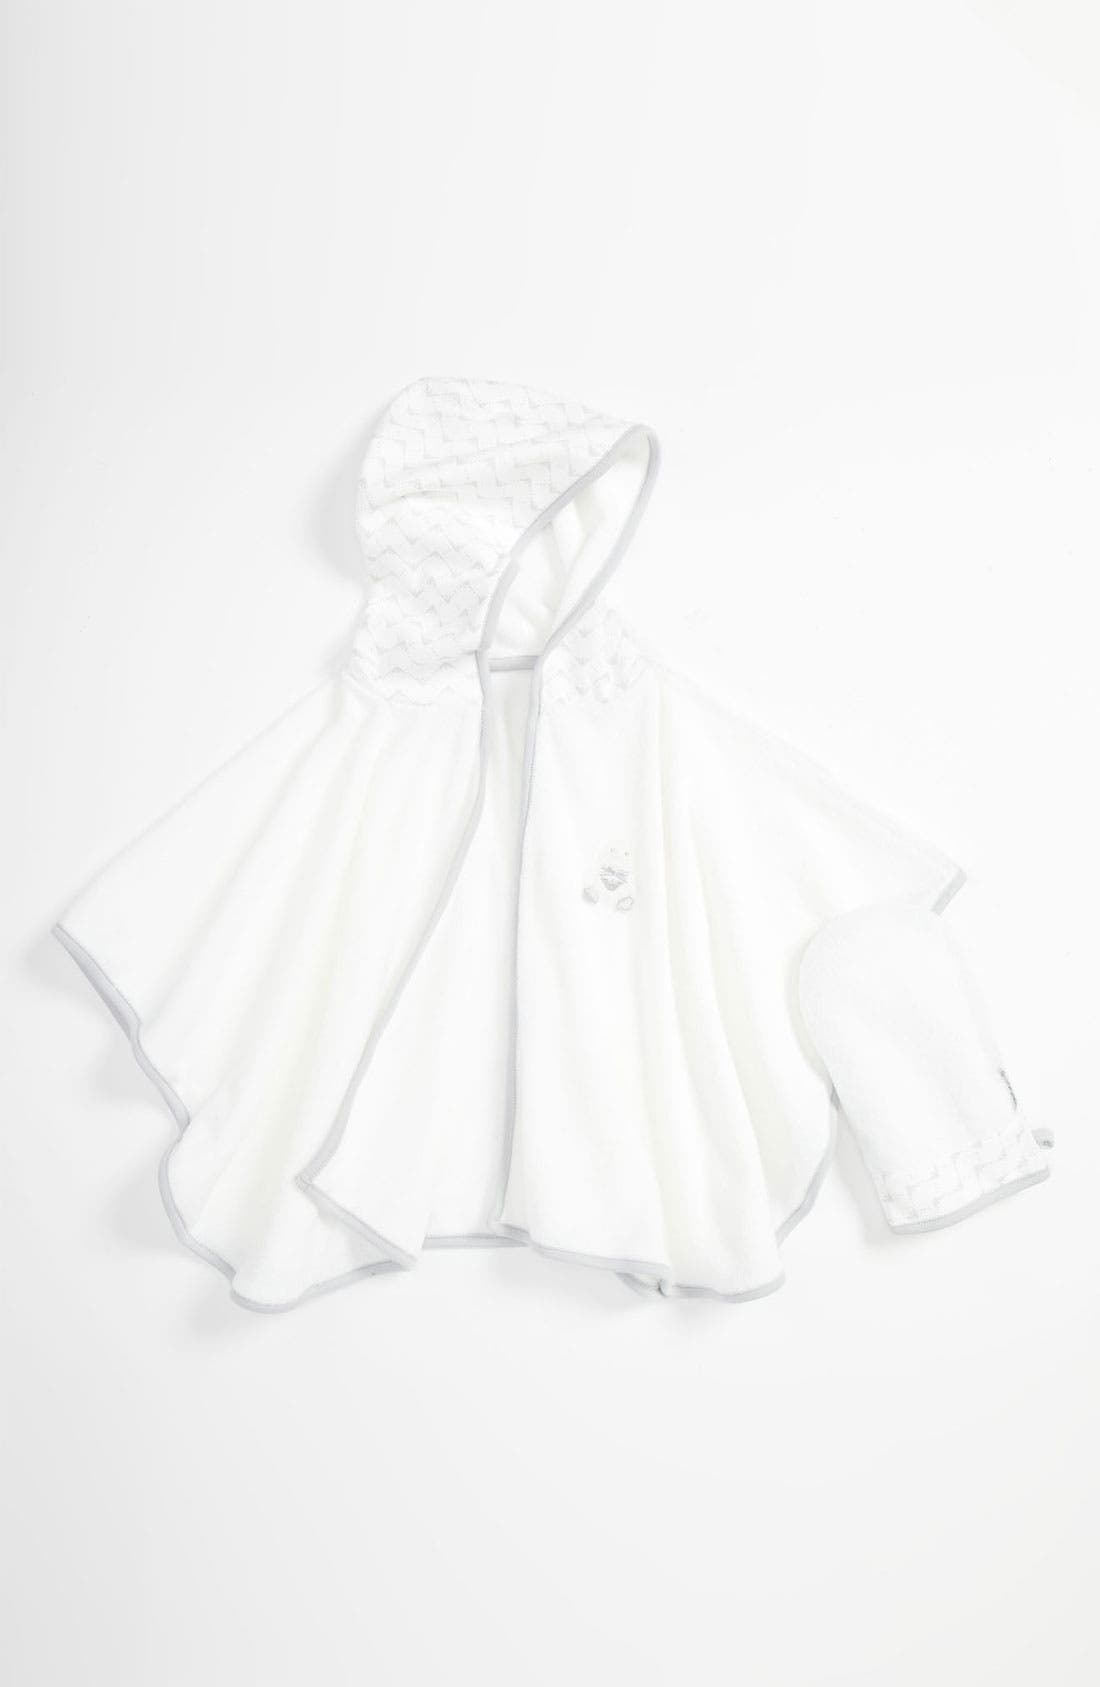 Main Image - Armani Junior Terry Cloth Bath Set (Baby)